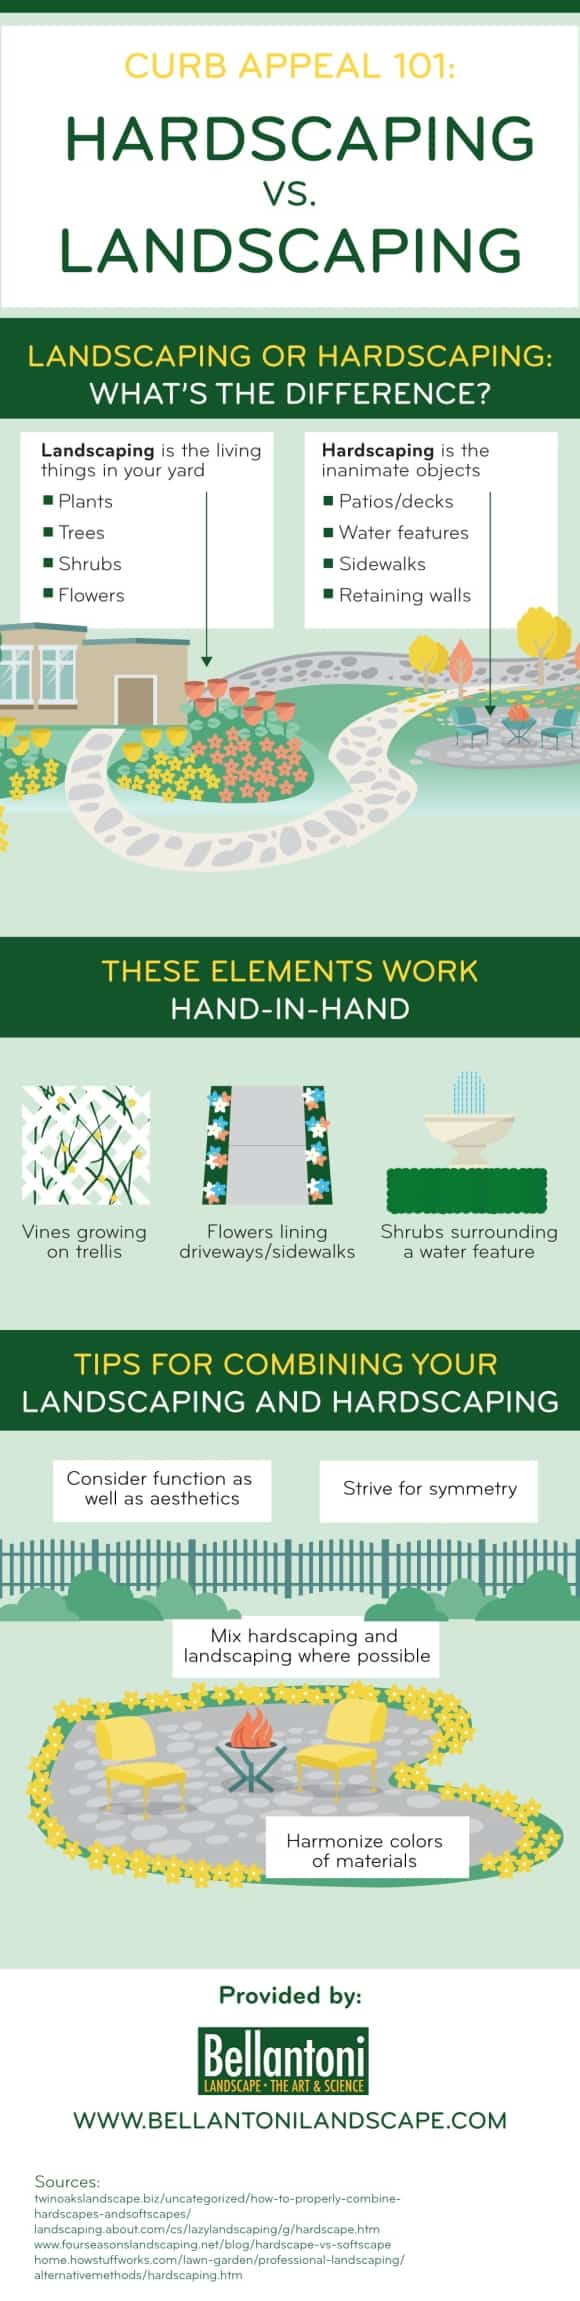 Hardscaping Versus Landscaping Infographic